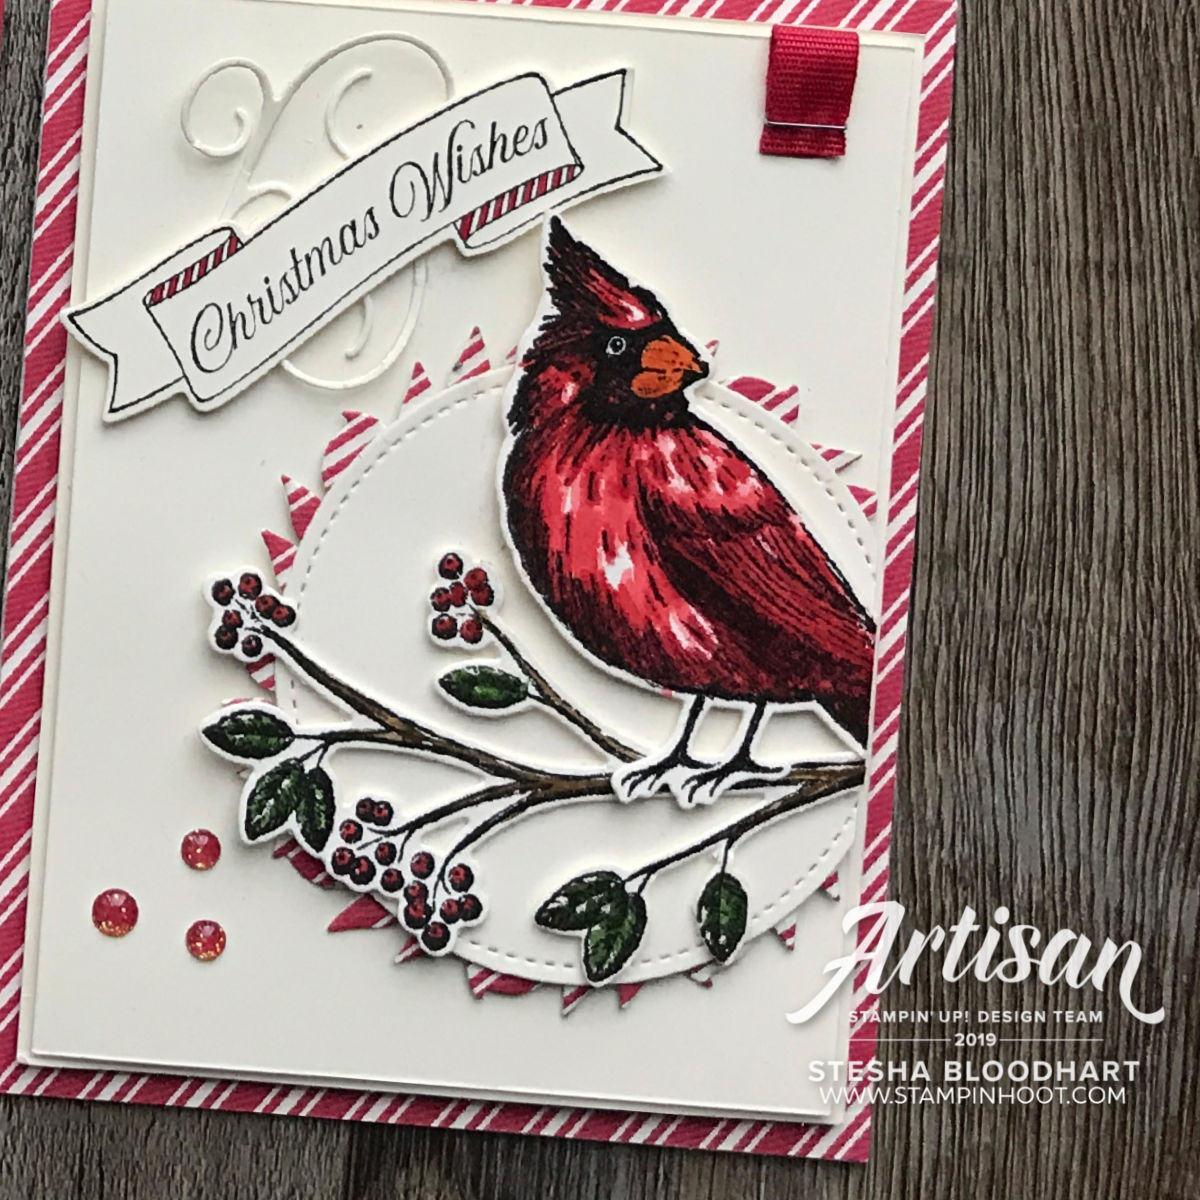 Artisan Design Team Blog Hop October 2019 - Gather Together Bundle - Scrapbook Page and Card Created by Stesha Bloodhart, Stampin' Hoot!